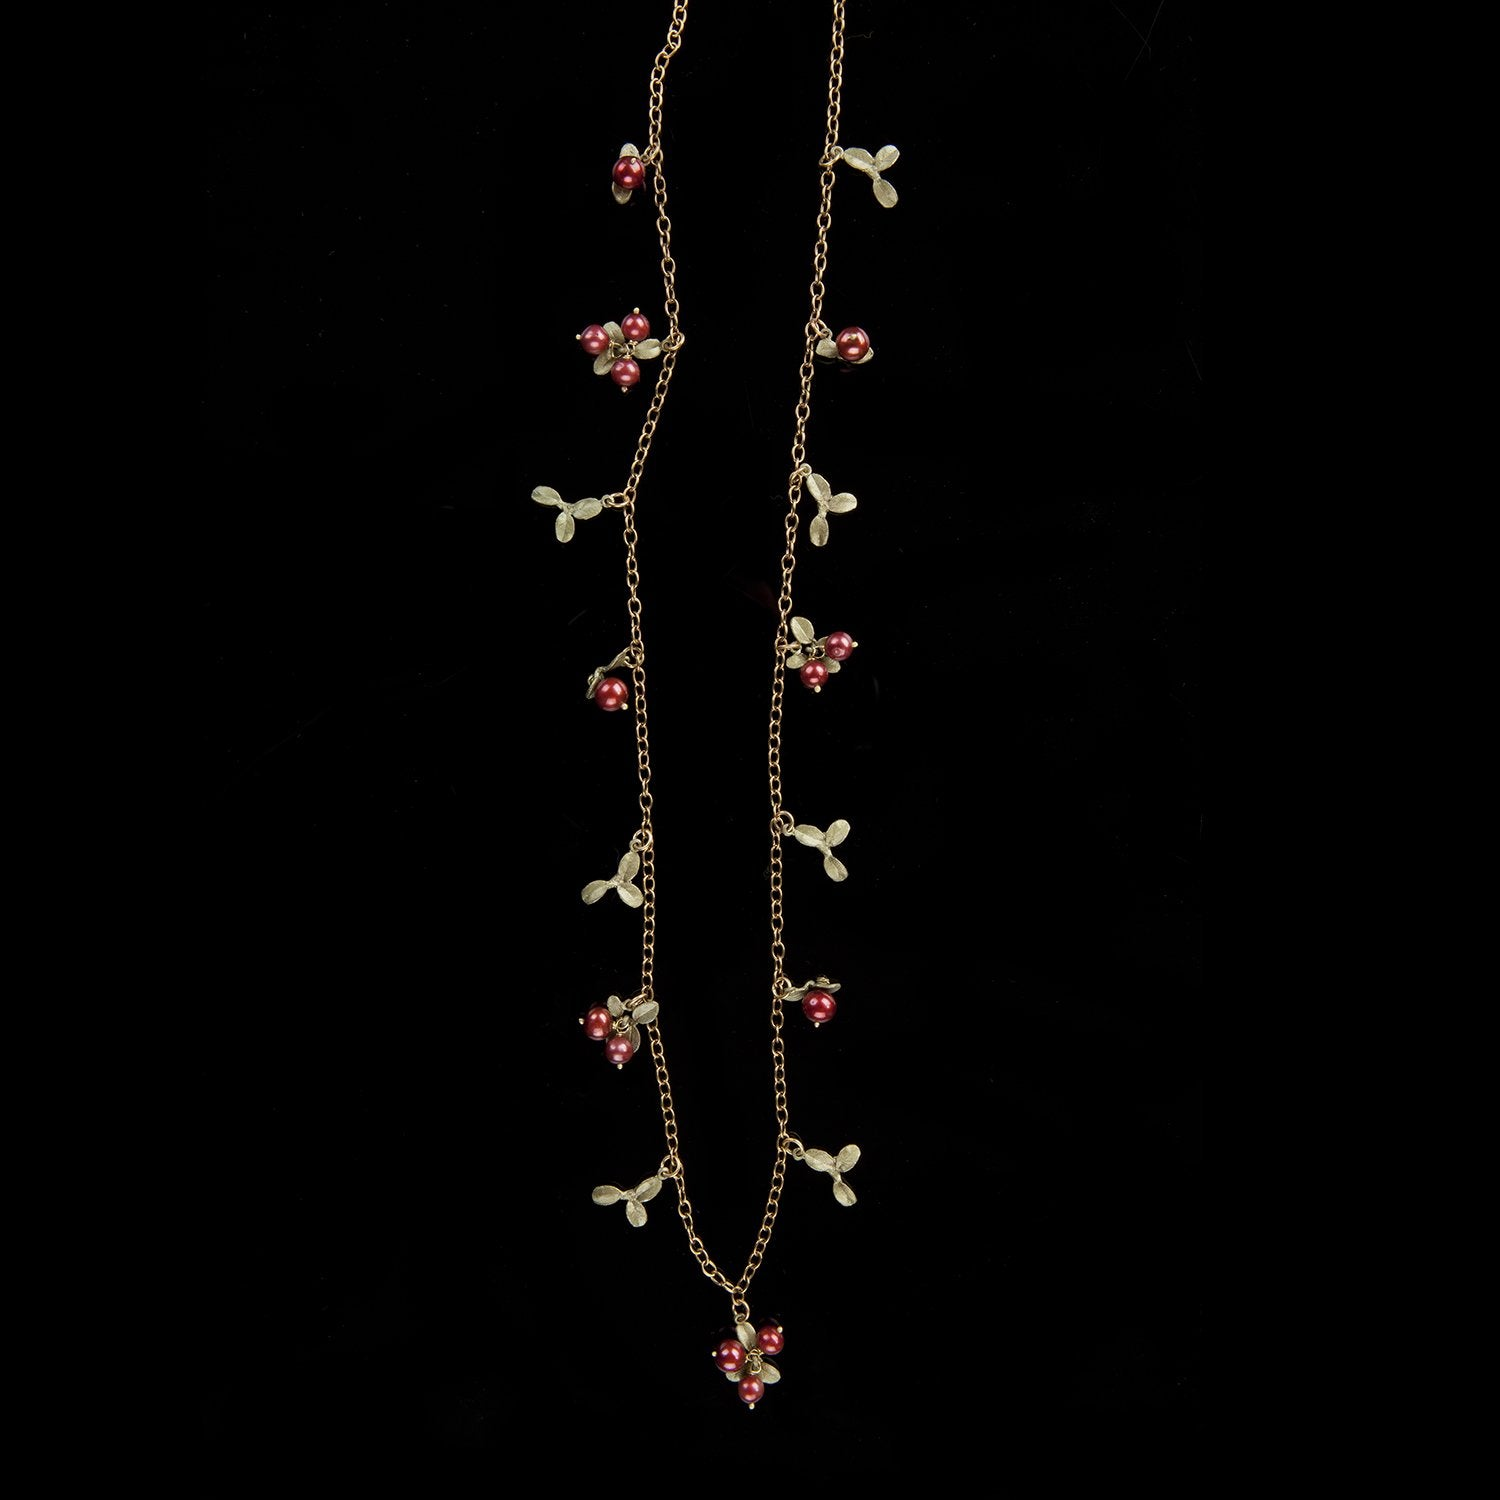 Cranberry Long Necklace